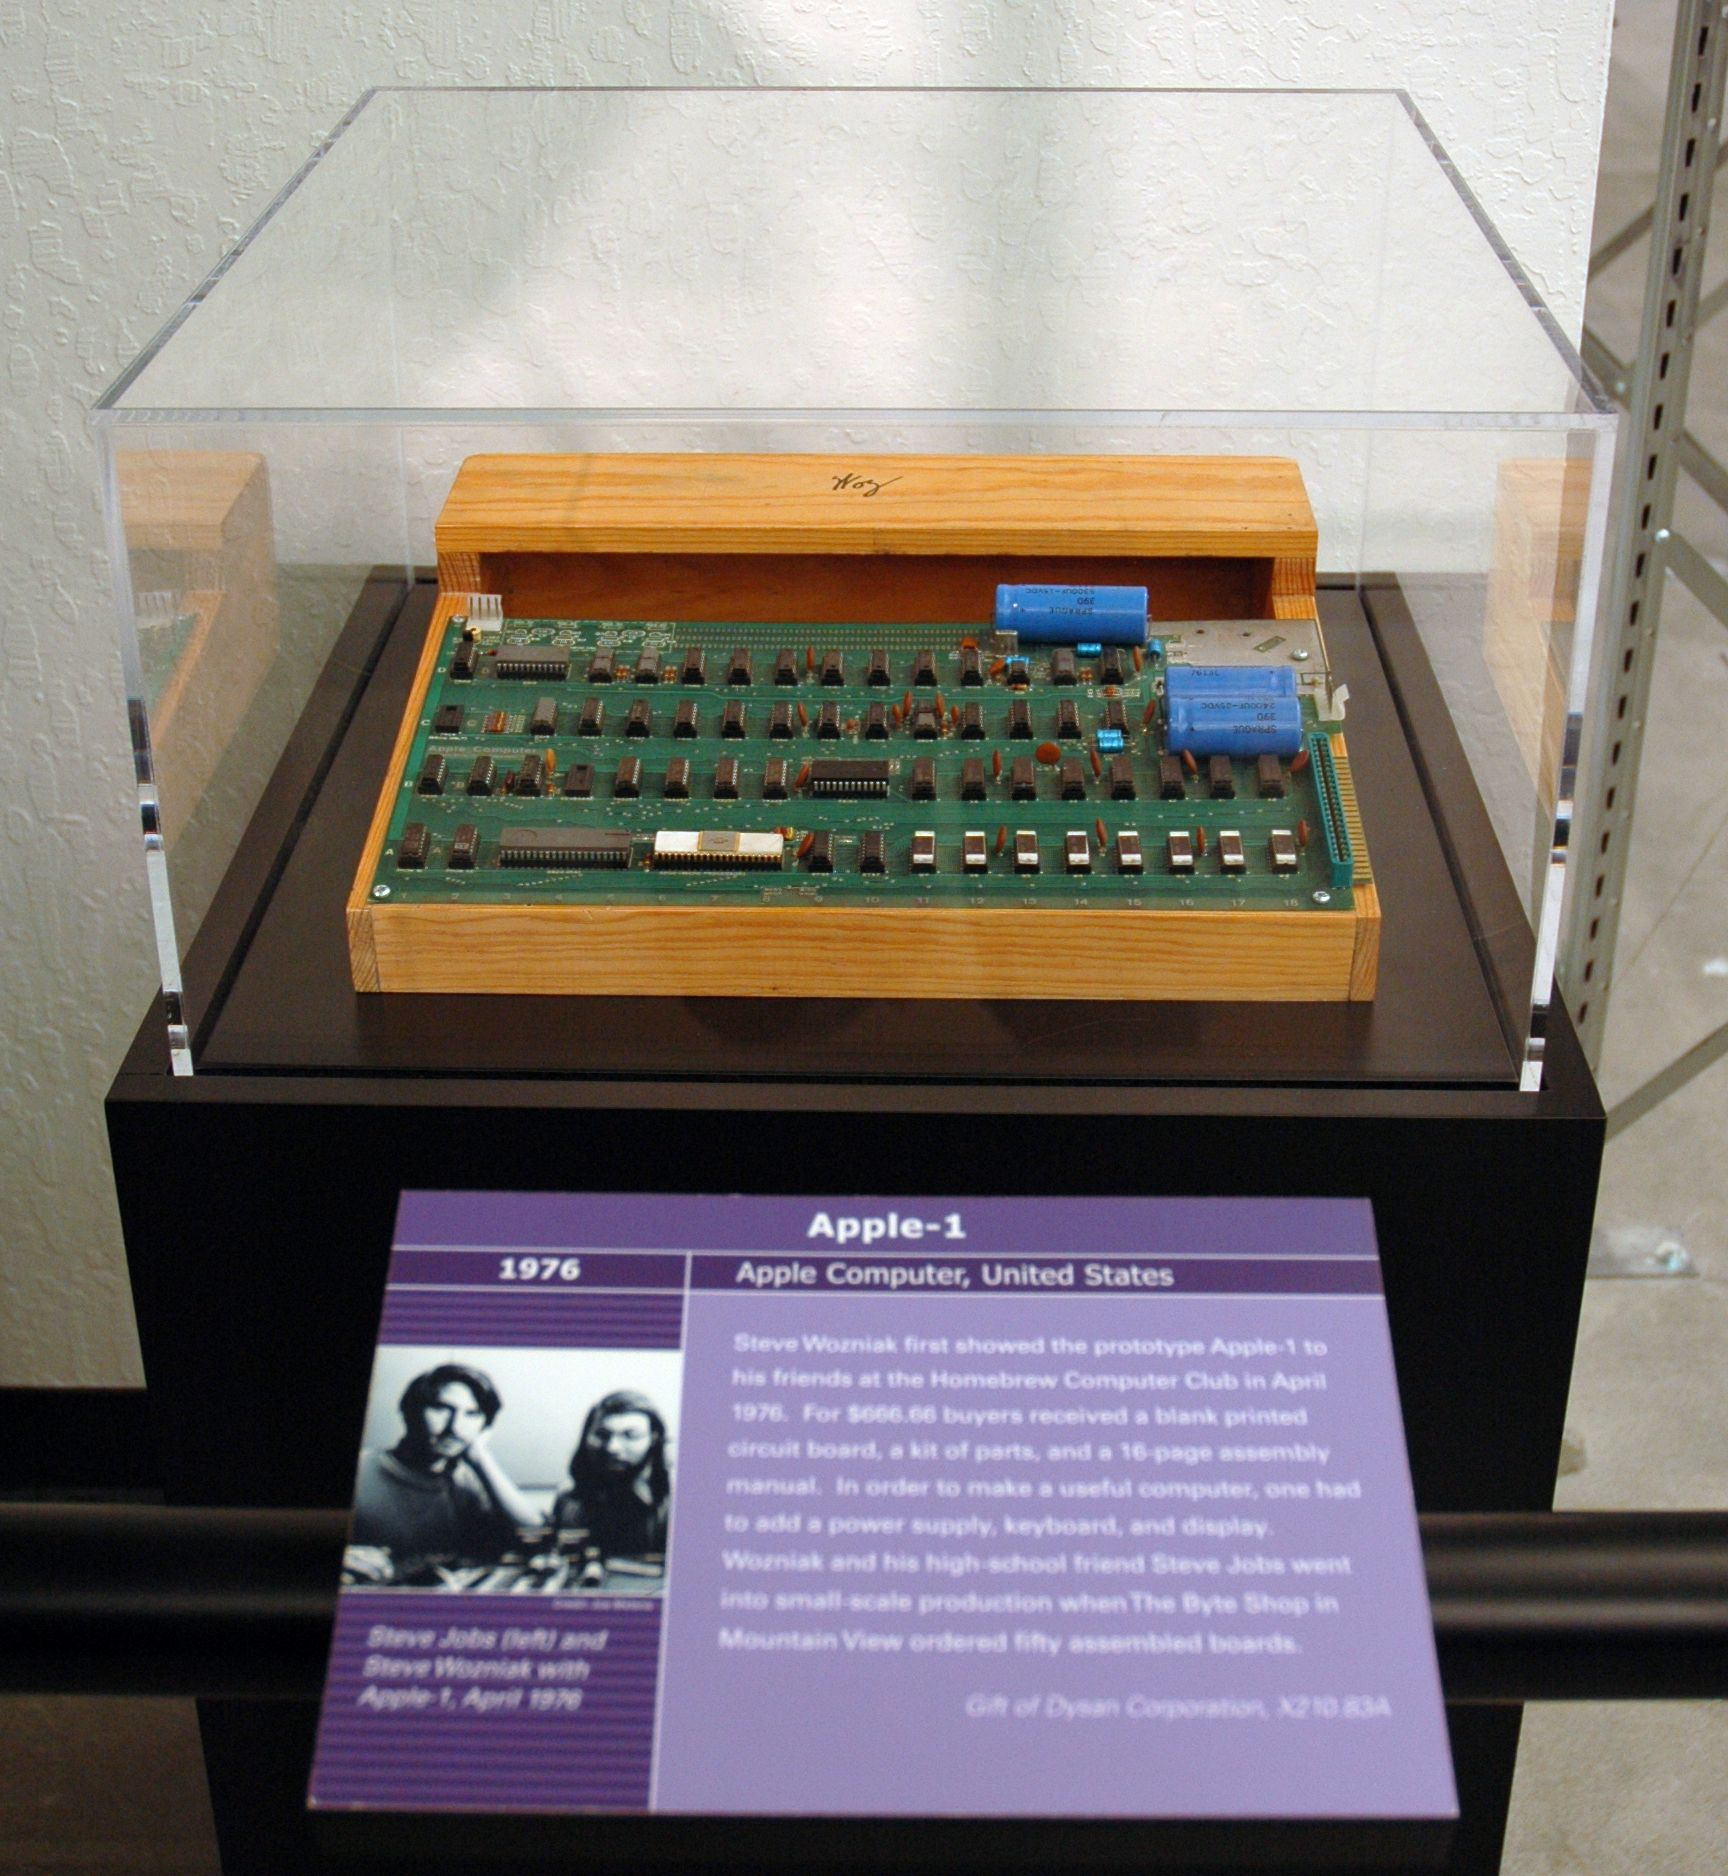 The very first Apple product, the Apple-1 computer, 1976.